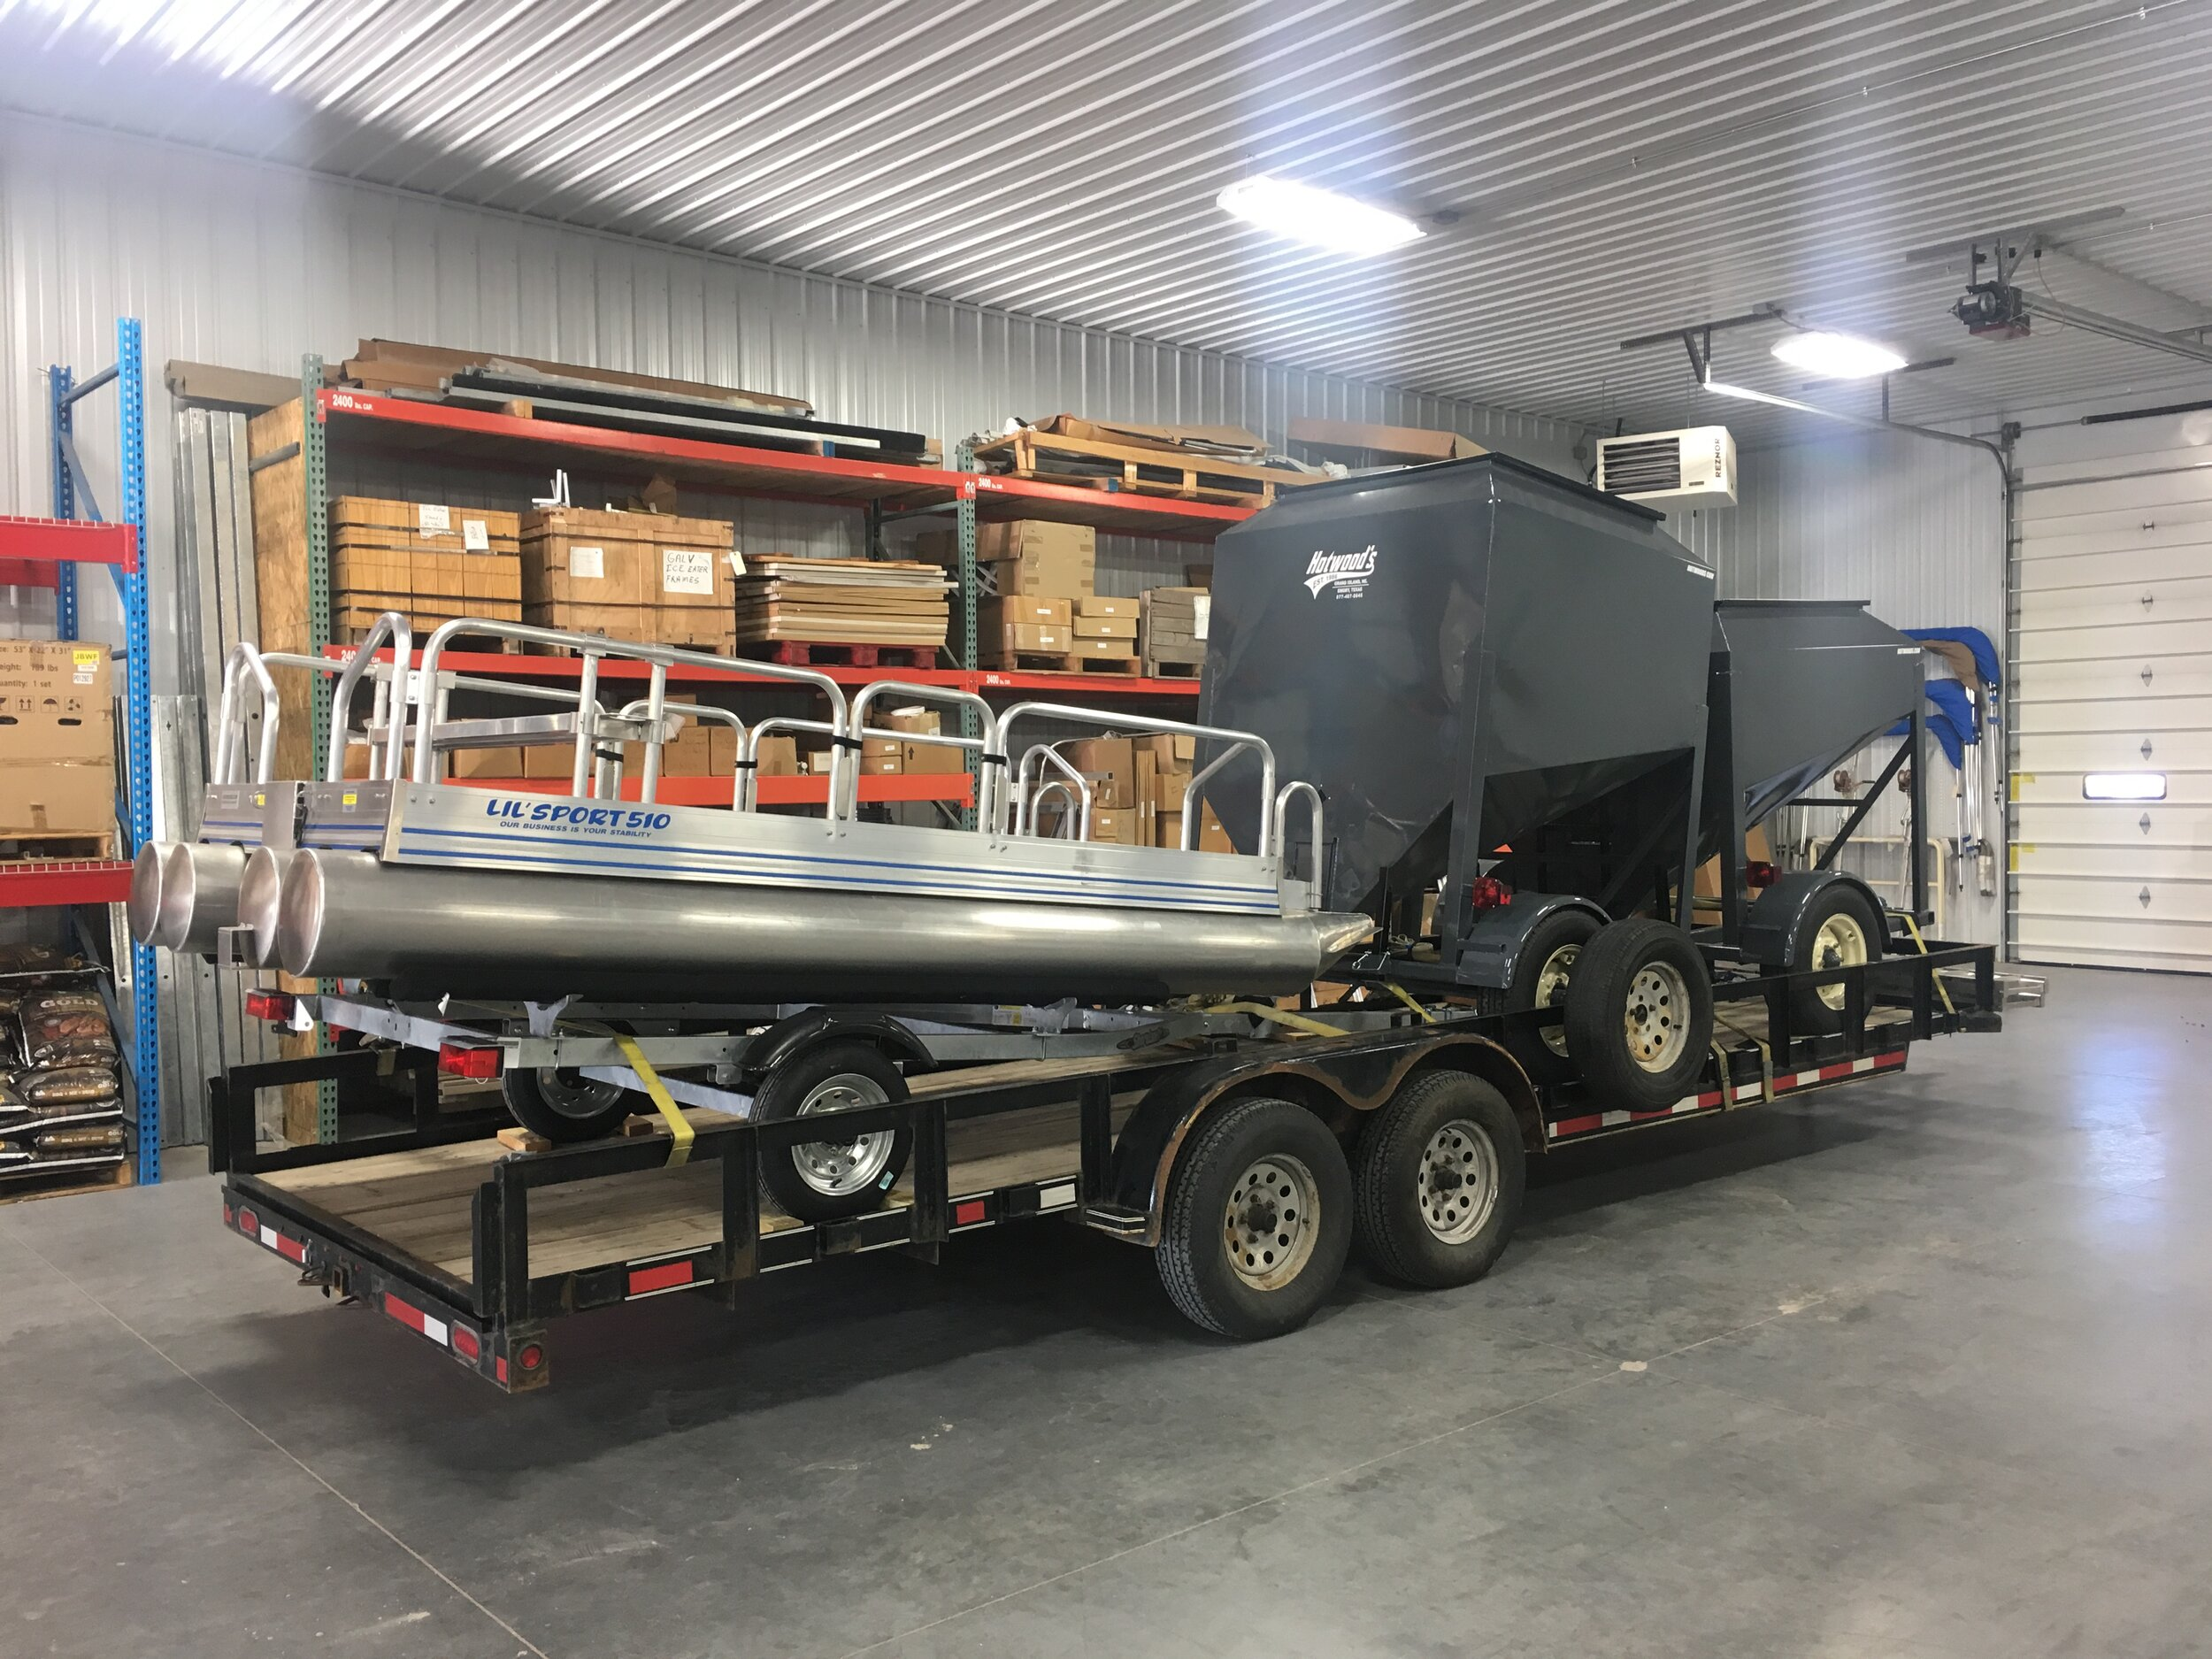 2 Grain Totes and 1 Lil Sport pontoon boat headed for New Jersey. When we say we deliver, that is what we do no matter your location, so do not let distance keep you from calling for a quote.